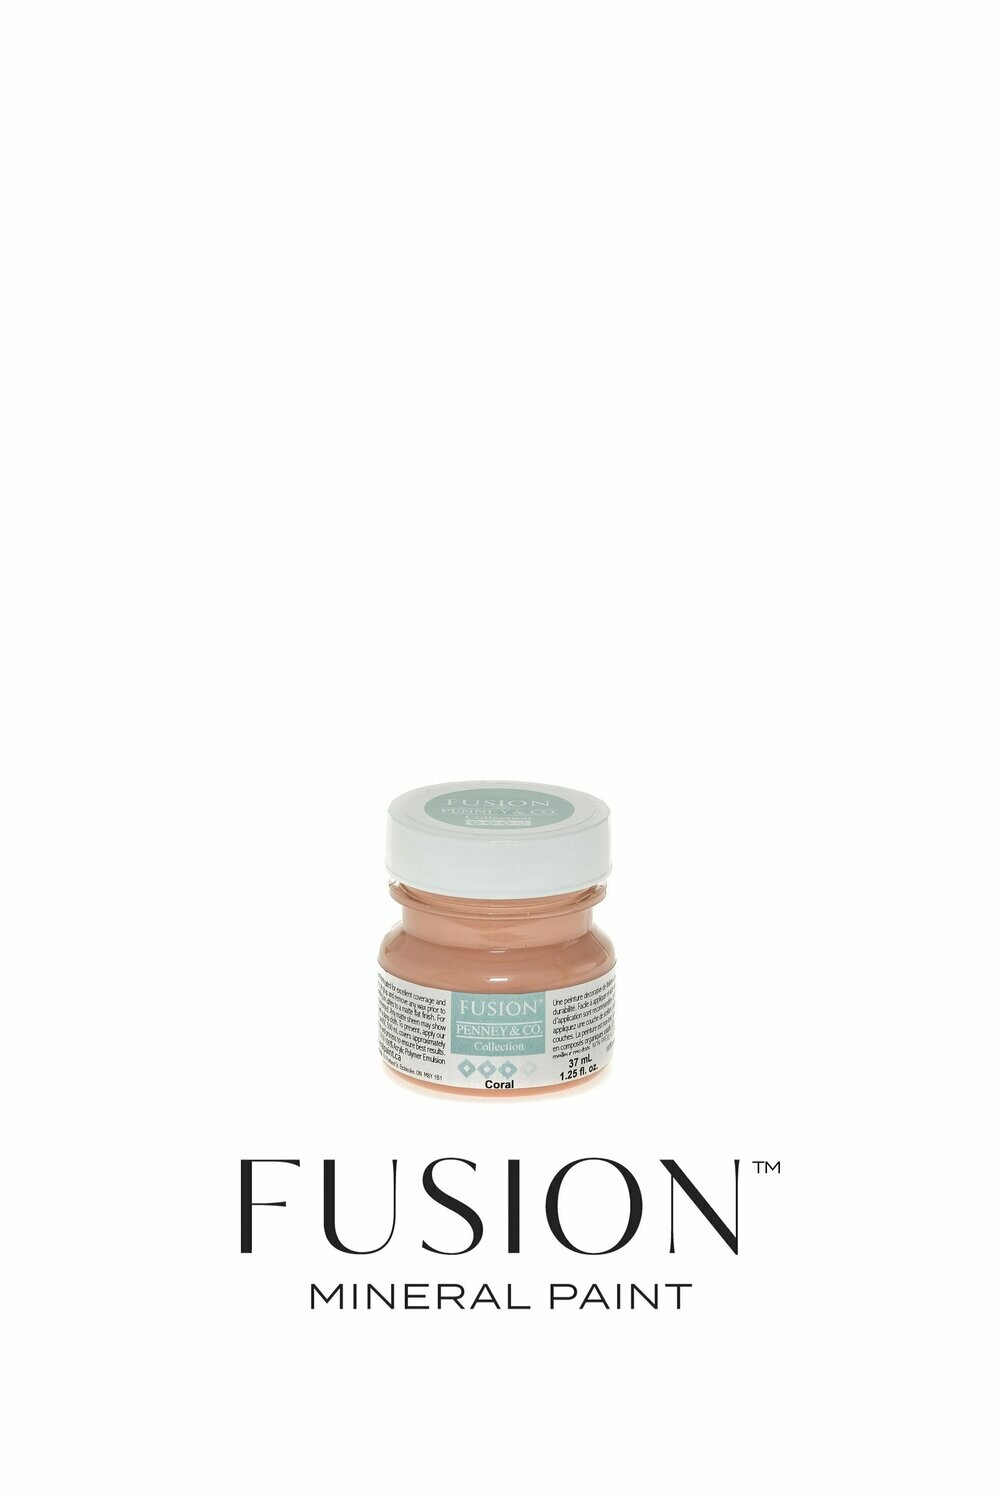 Coral Fusion Mineral Paint Tester